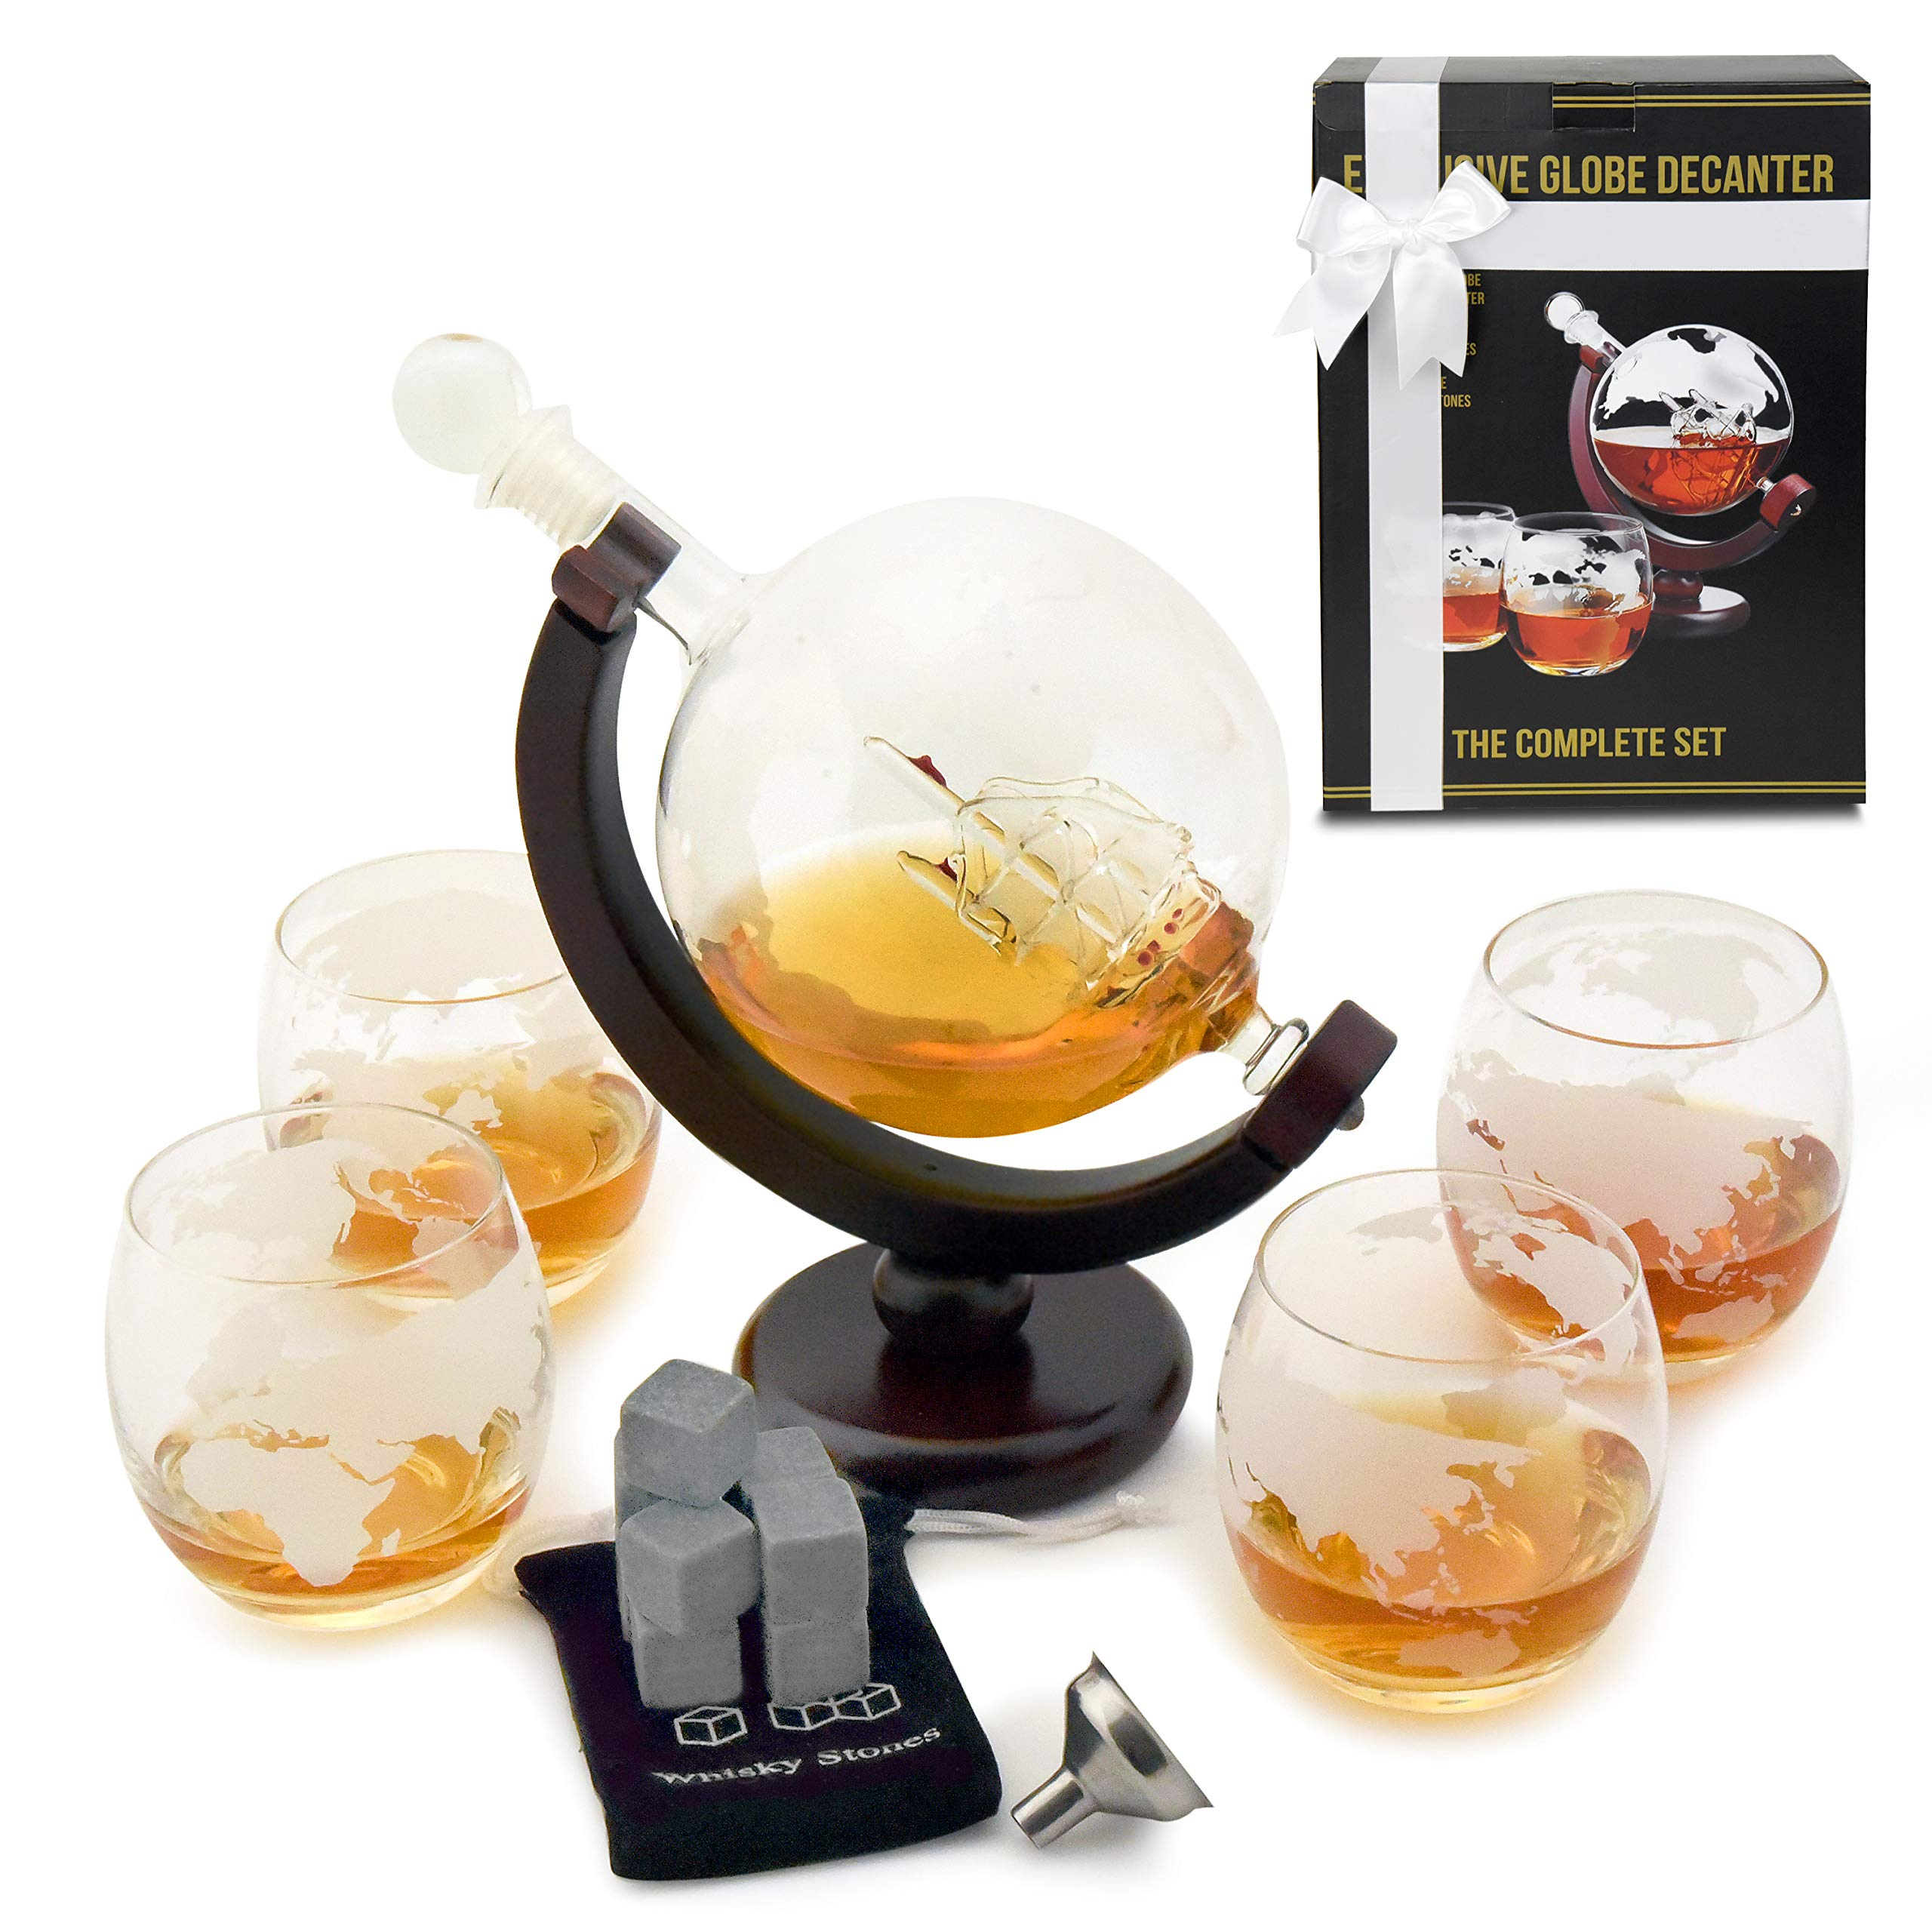 Whiskey Decanter Set with Globe Glasses - Premium Whiskey Gift Set - Etched Globe Decanter for Scotch, Bourbon or Liquor - 850ml Wine Decanter Set + 9 Bonus Ice Stones - Glass Decanter with Gift Box